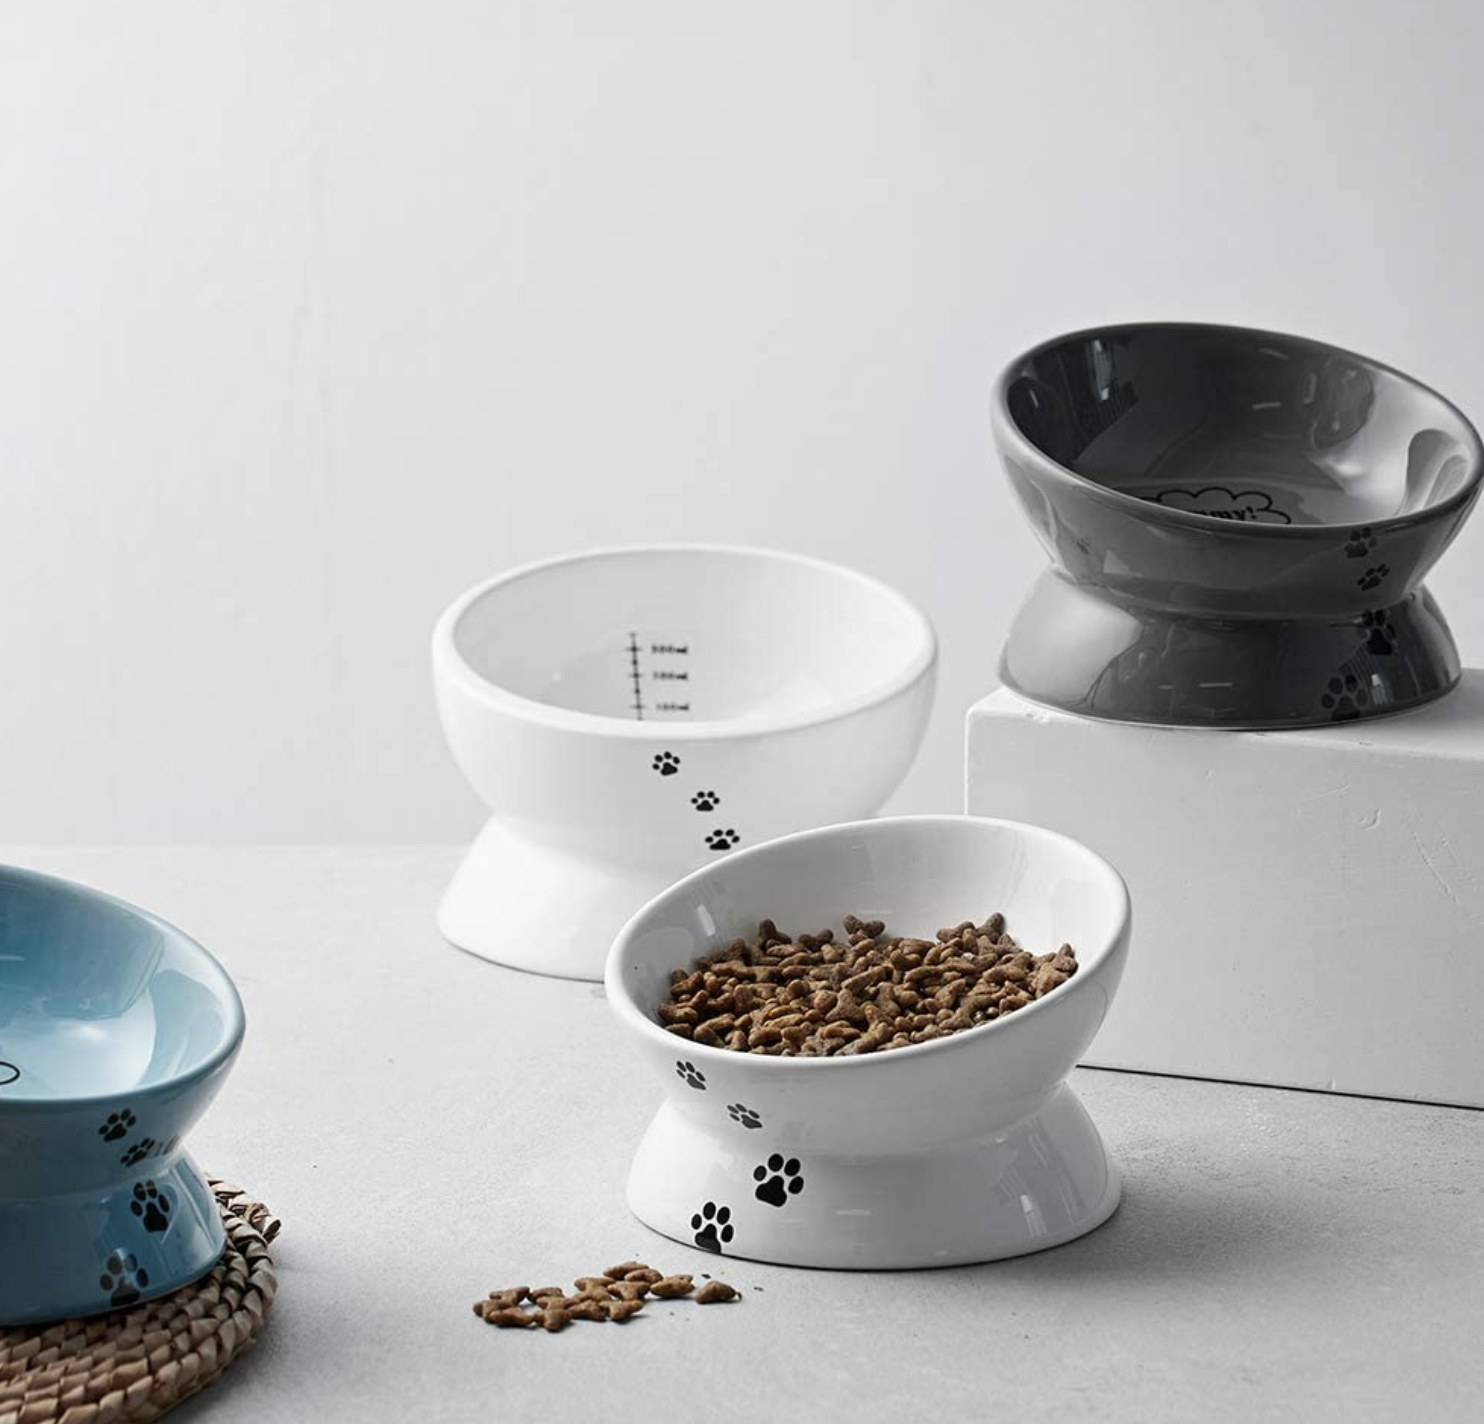 titled cat food bowls with paw prints on the outside of them and measurements on the inside of them. There are two white bowls, one blue bowl, and one grey bowl. One of the white bowls contains dry food